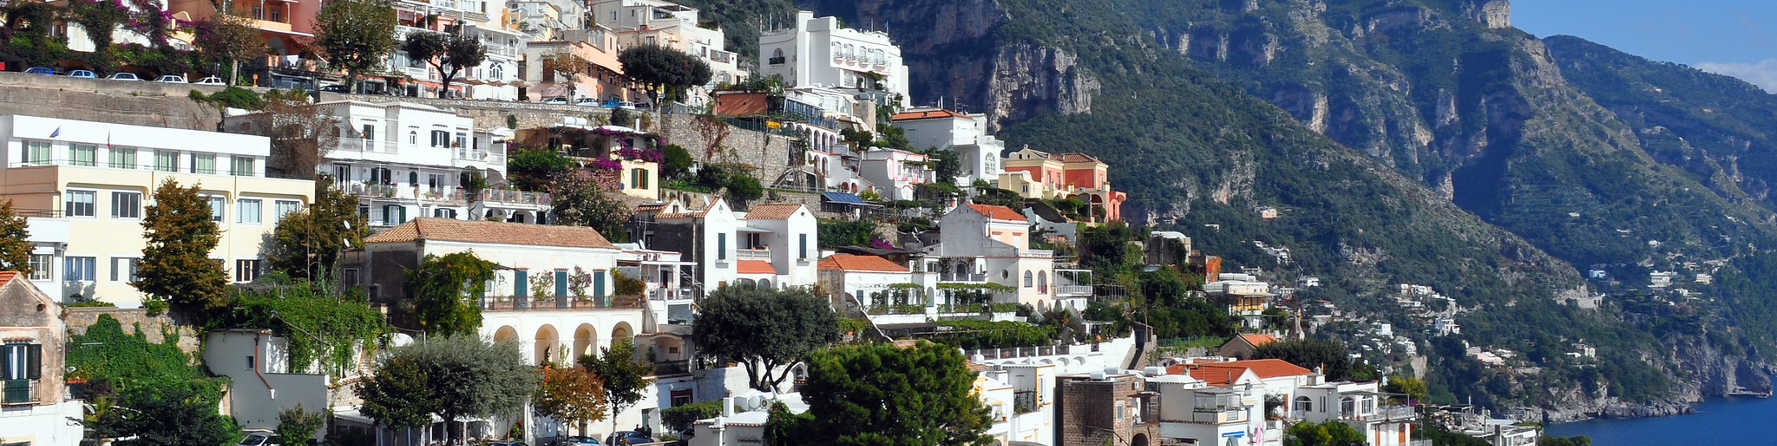 Is the Amalfi Coast expensive?